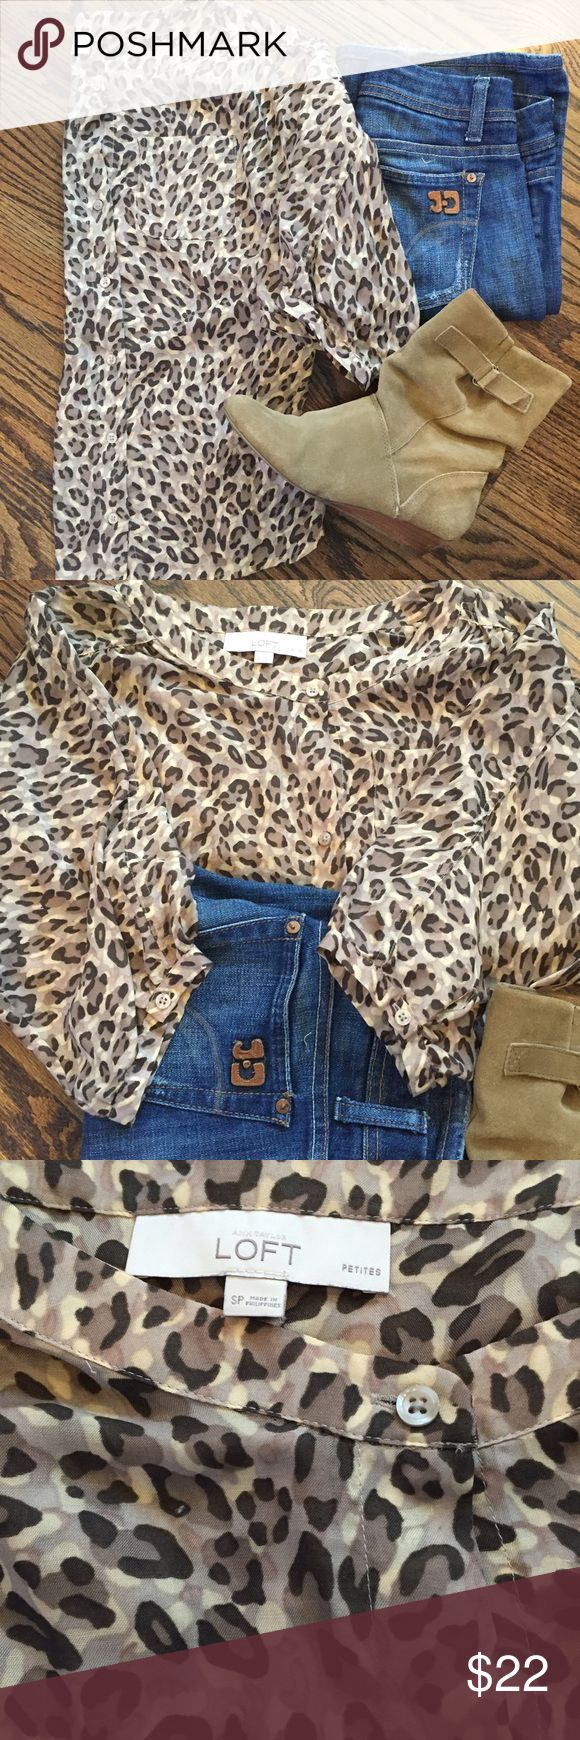 ✨New listing✨ Animal print Loft batwing top This animal print batwing top from Ann Taylor Loft takes the colors of fall and combines them with a fun & flirty animal print.  The top is semi-sheer with a boat neck and 3/4 sleeves.  In excellent used condition.  Size SP. LOFT Tops